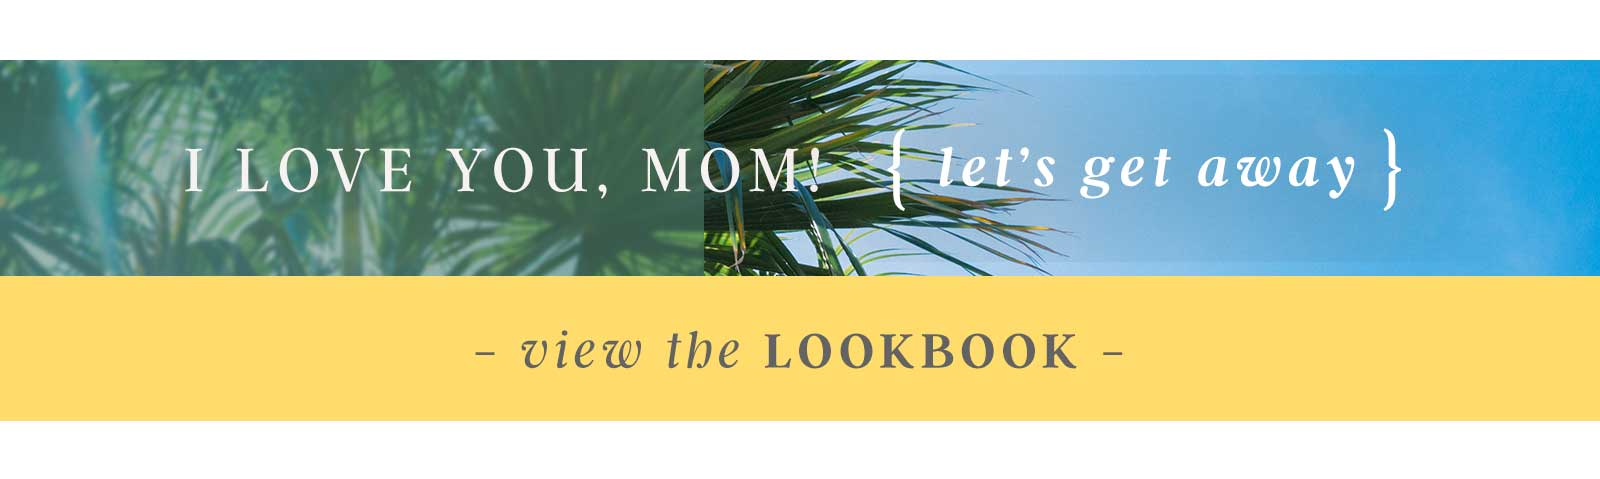 I Love You, Mom - View the Lookbook